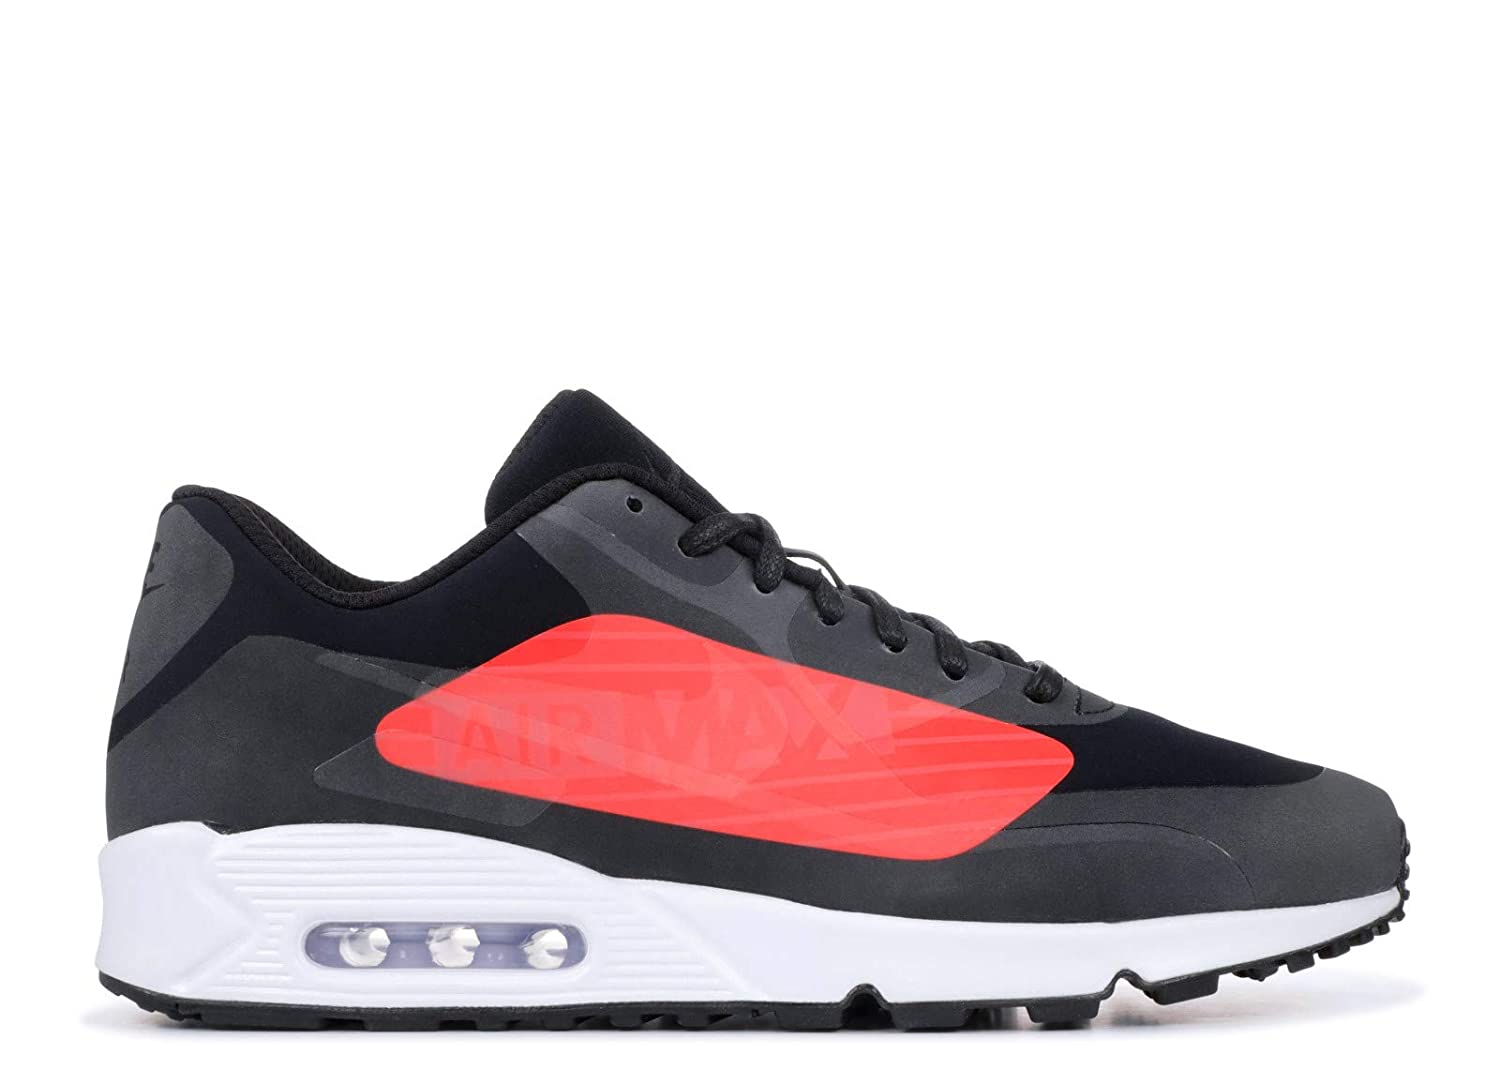 online retailer 855f6 a416f Nike AIR MAX 90 NS GPX  Big Logo  - AJ7182-003 Black, Bright Crimson   Amazon.ca  Shoes   Handbags